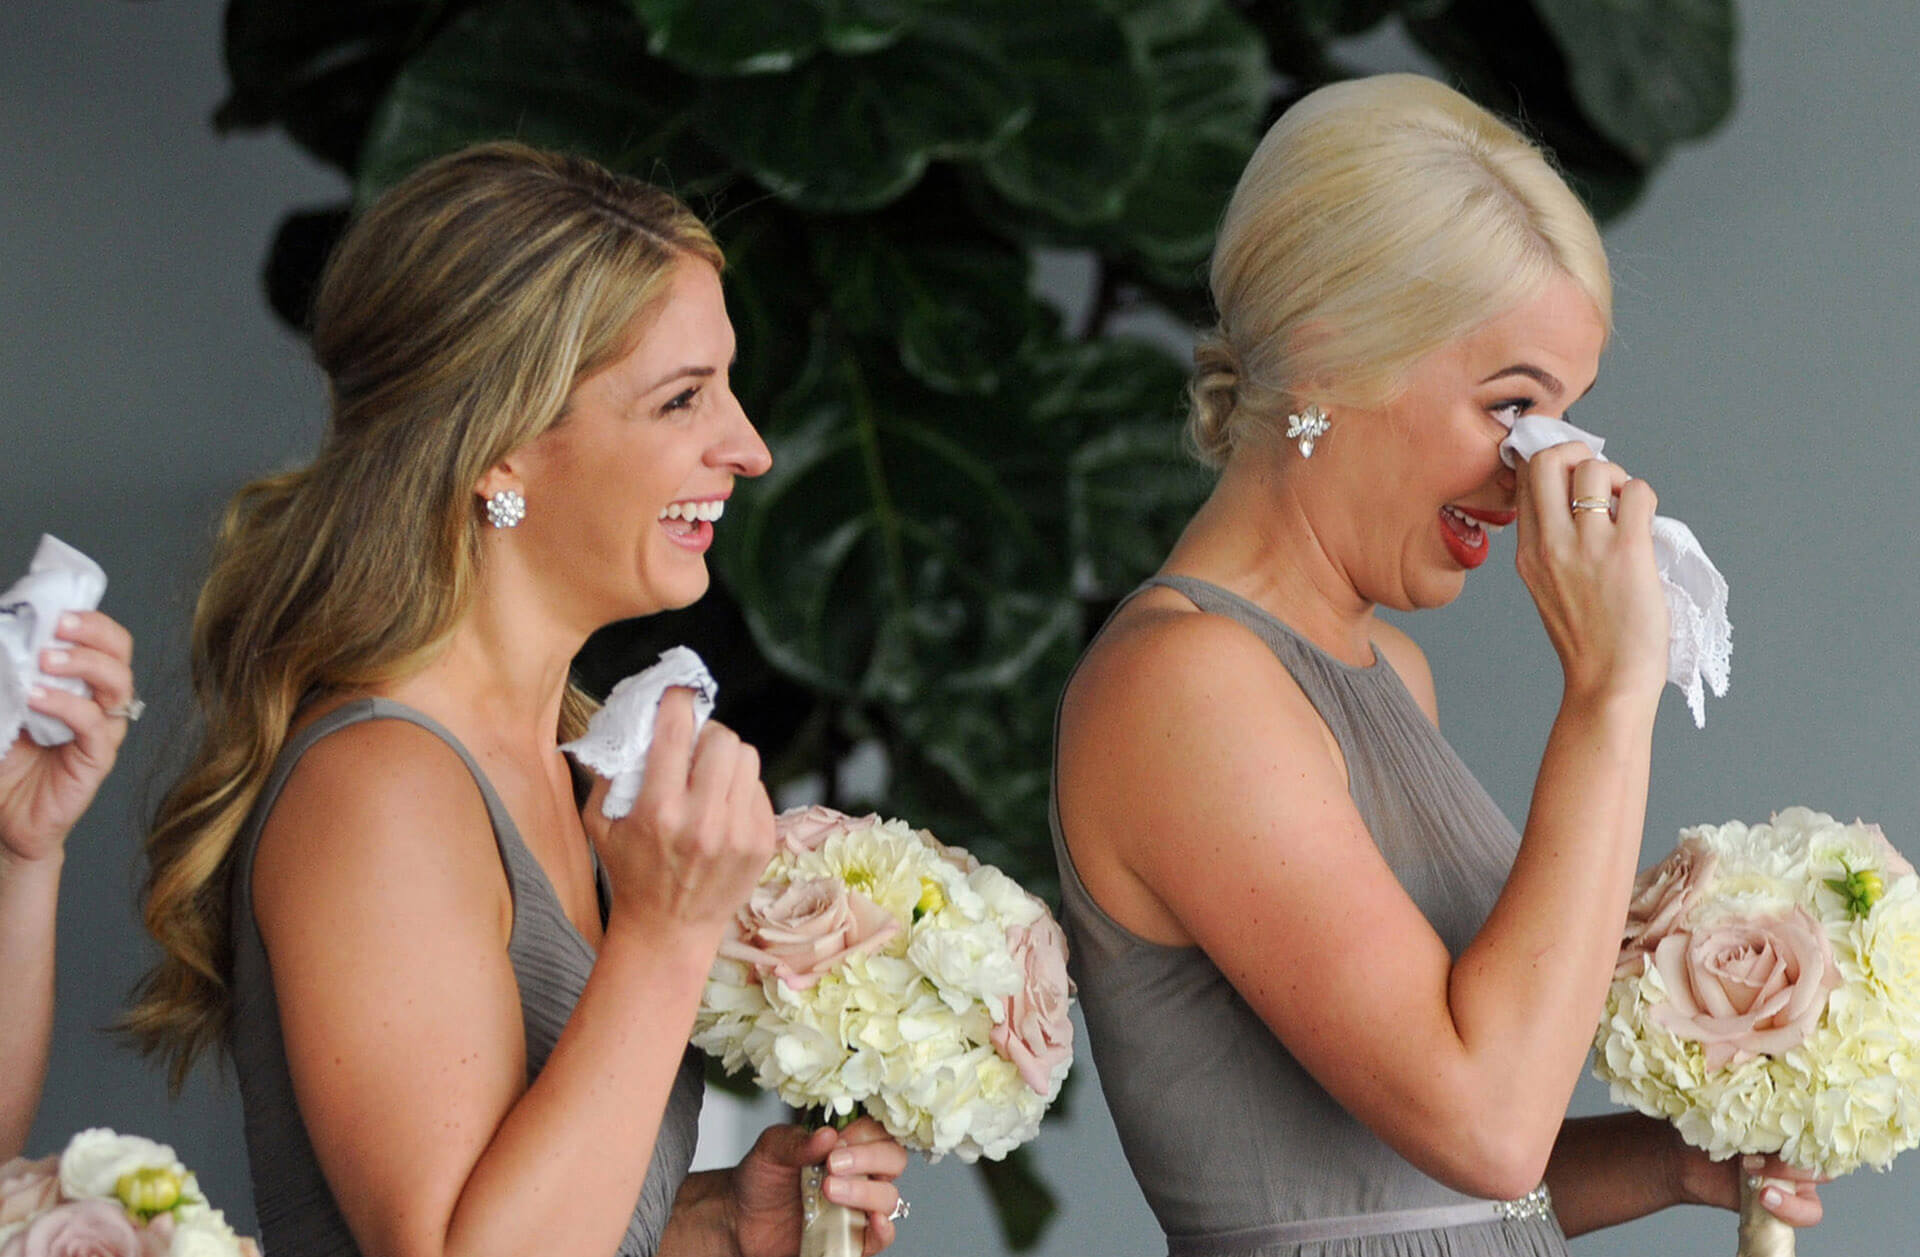 The bridesmaids tear up during a couple's vows in Detroit, Michigan's waterfront vantage point during their Waterview Loft wedding reception.